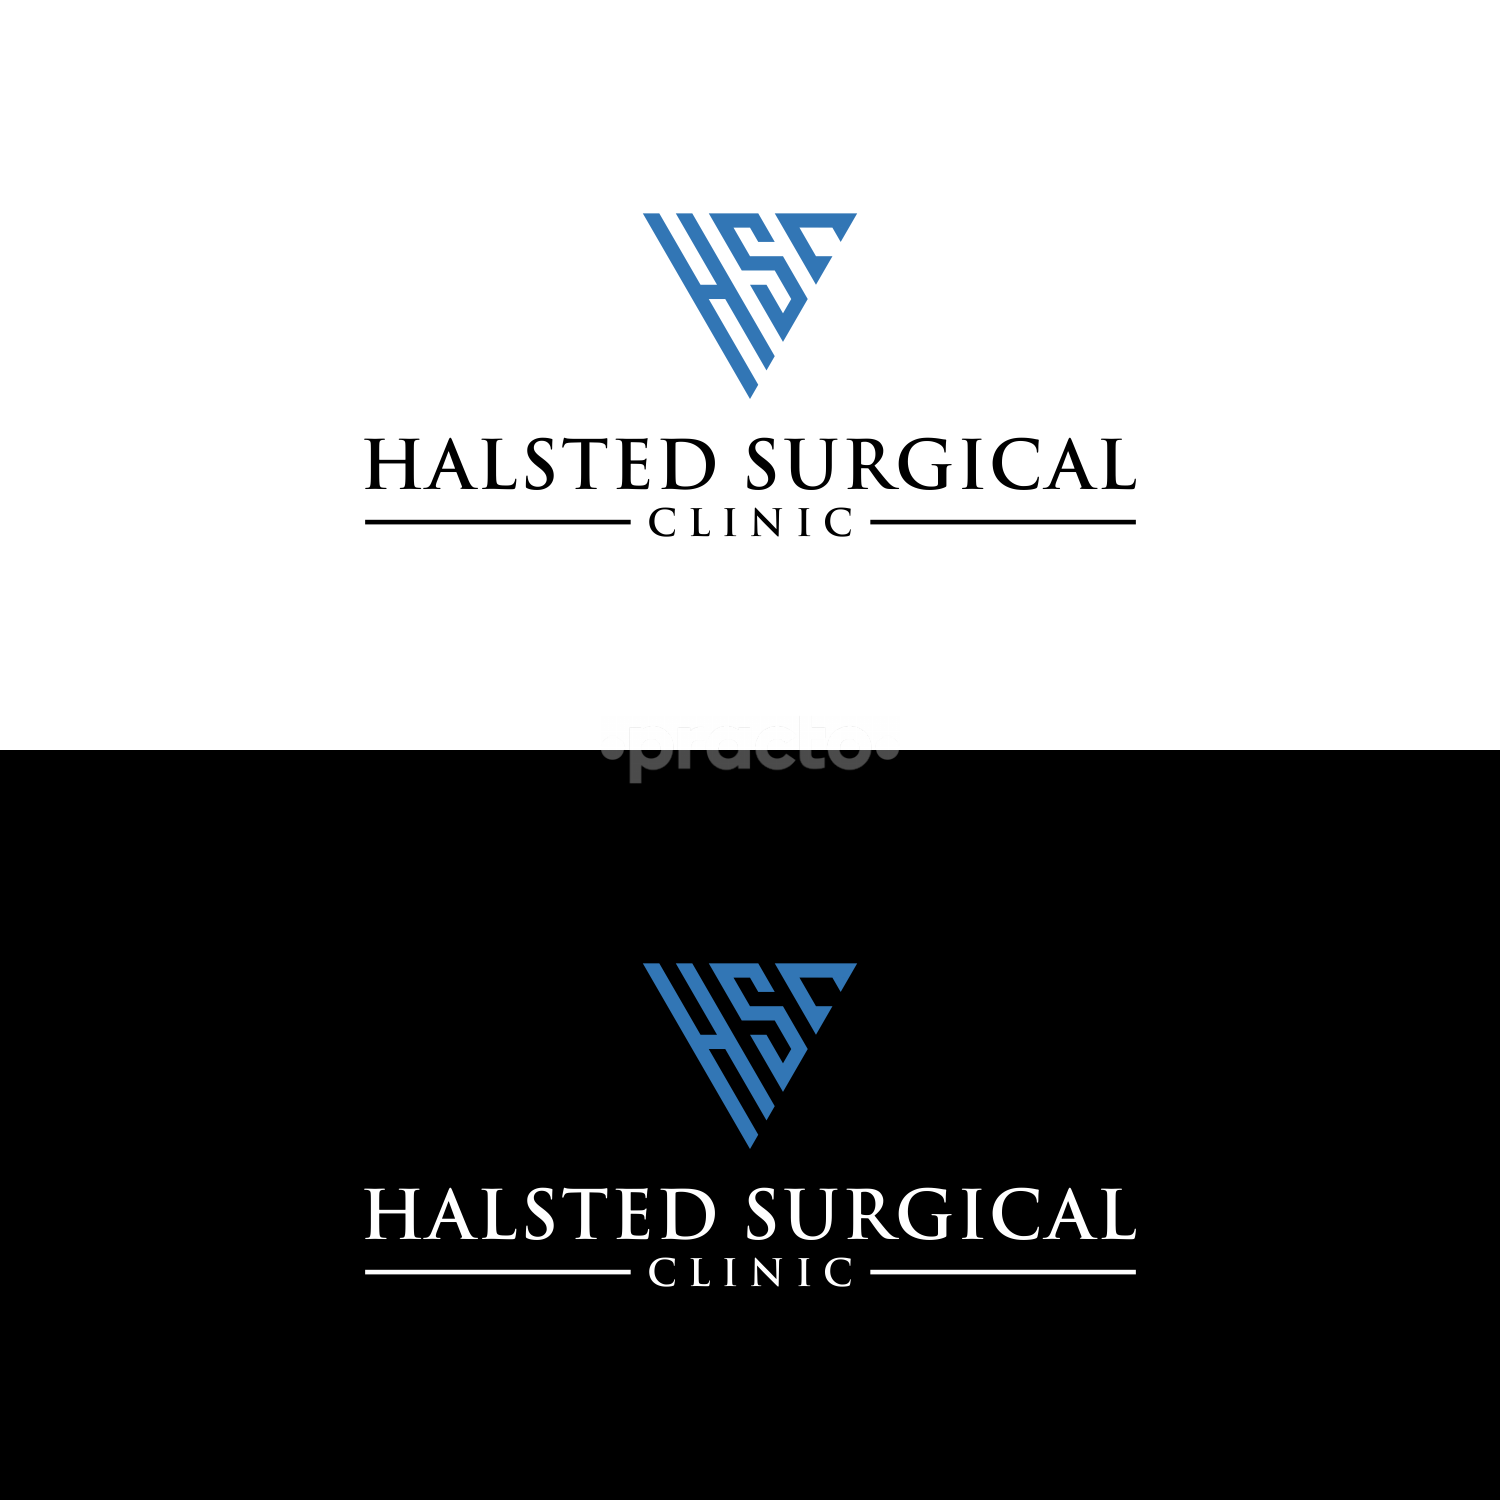 Halsted Surgical Clinic